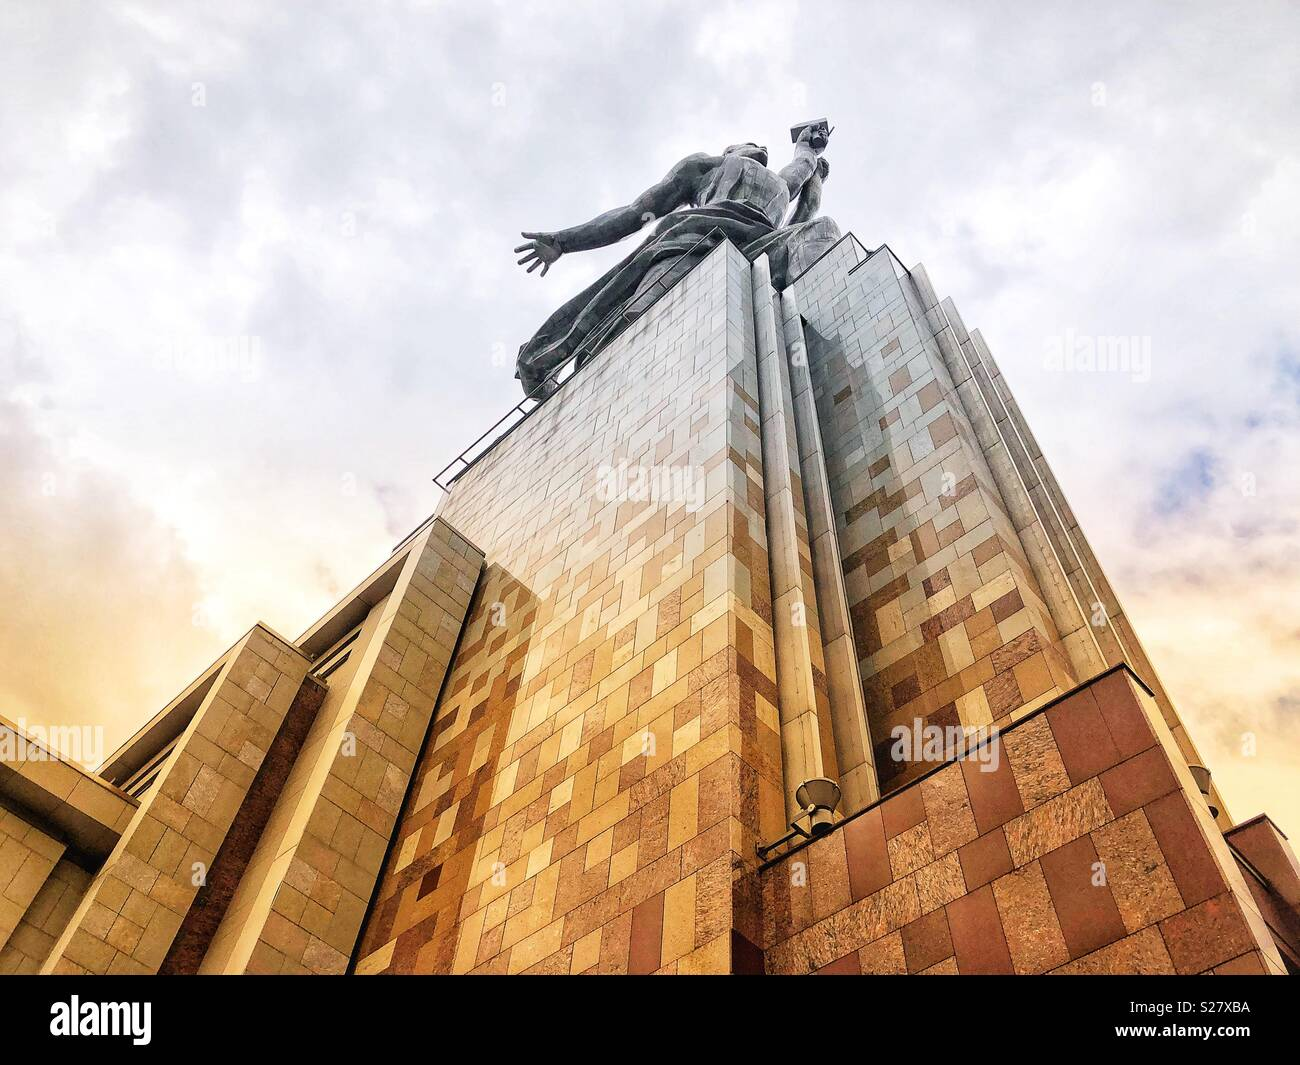 Worker and kolkhoz woman statue near VDNH exhibit in Moscow - Stock Image